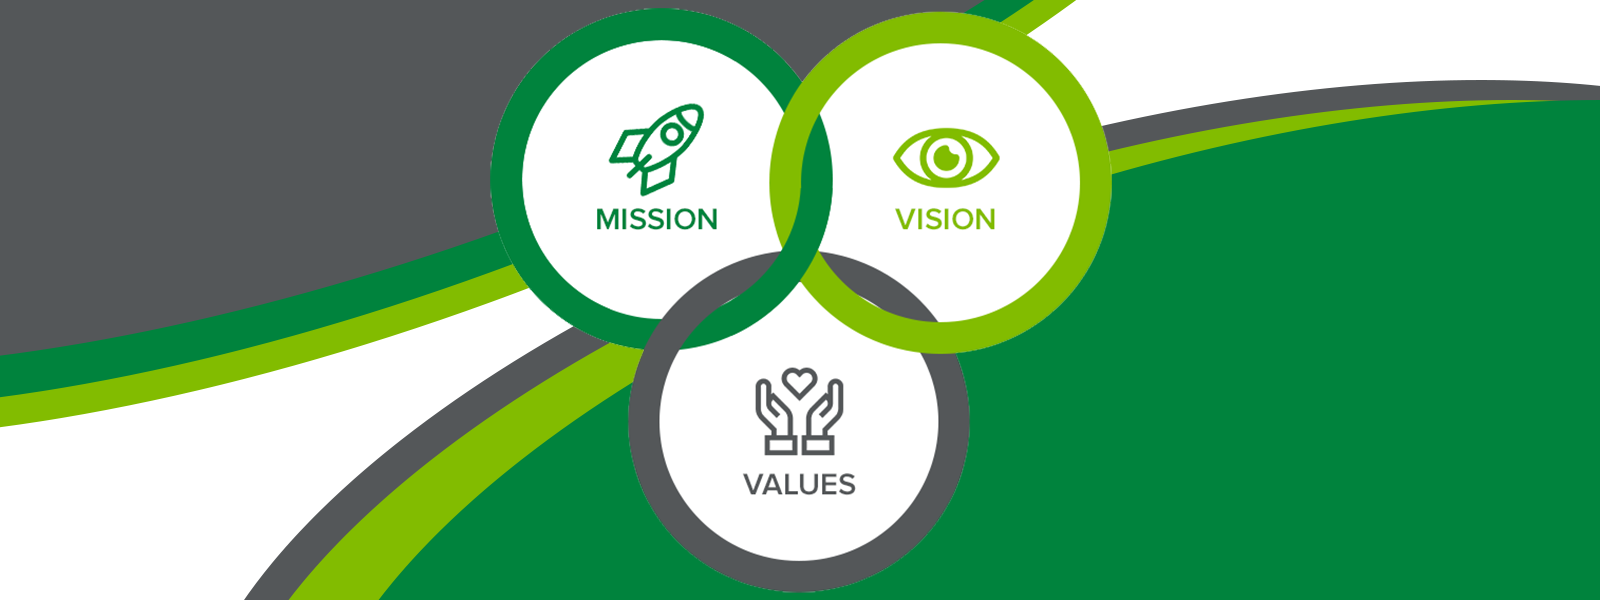 Pike13 mission vision values